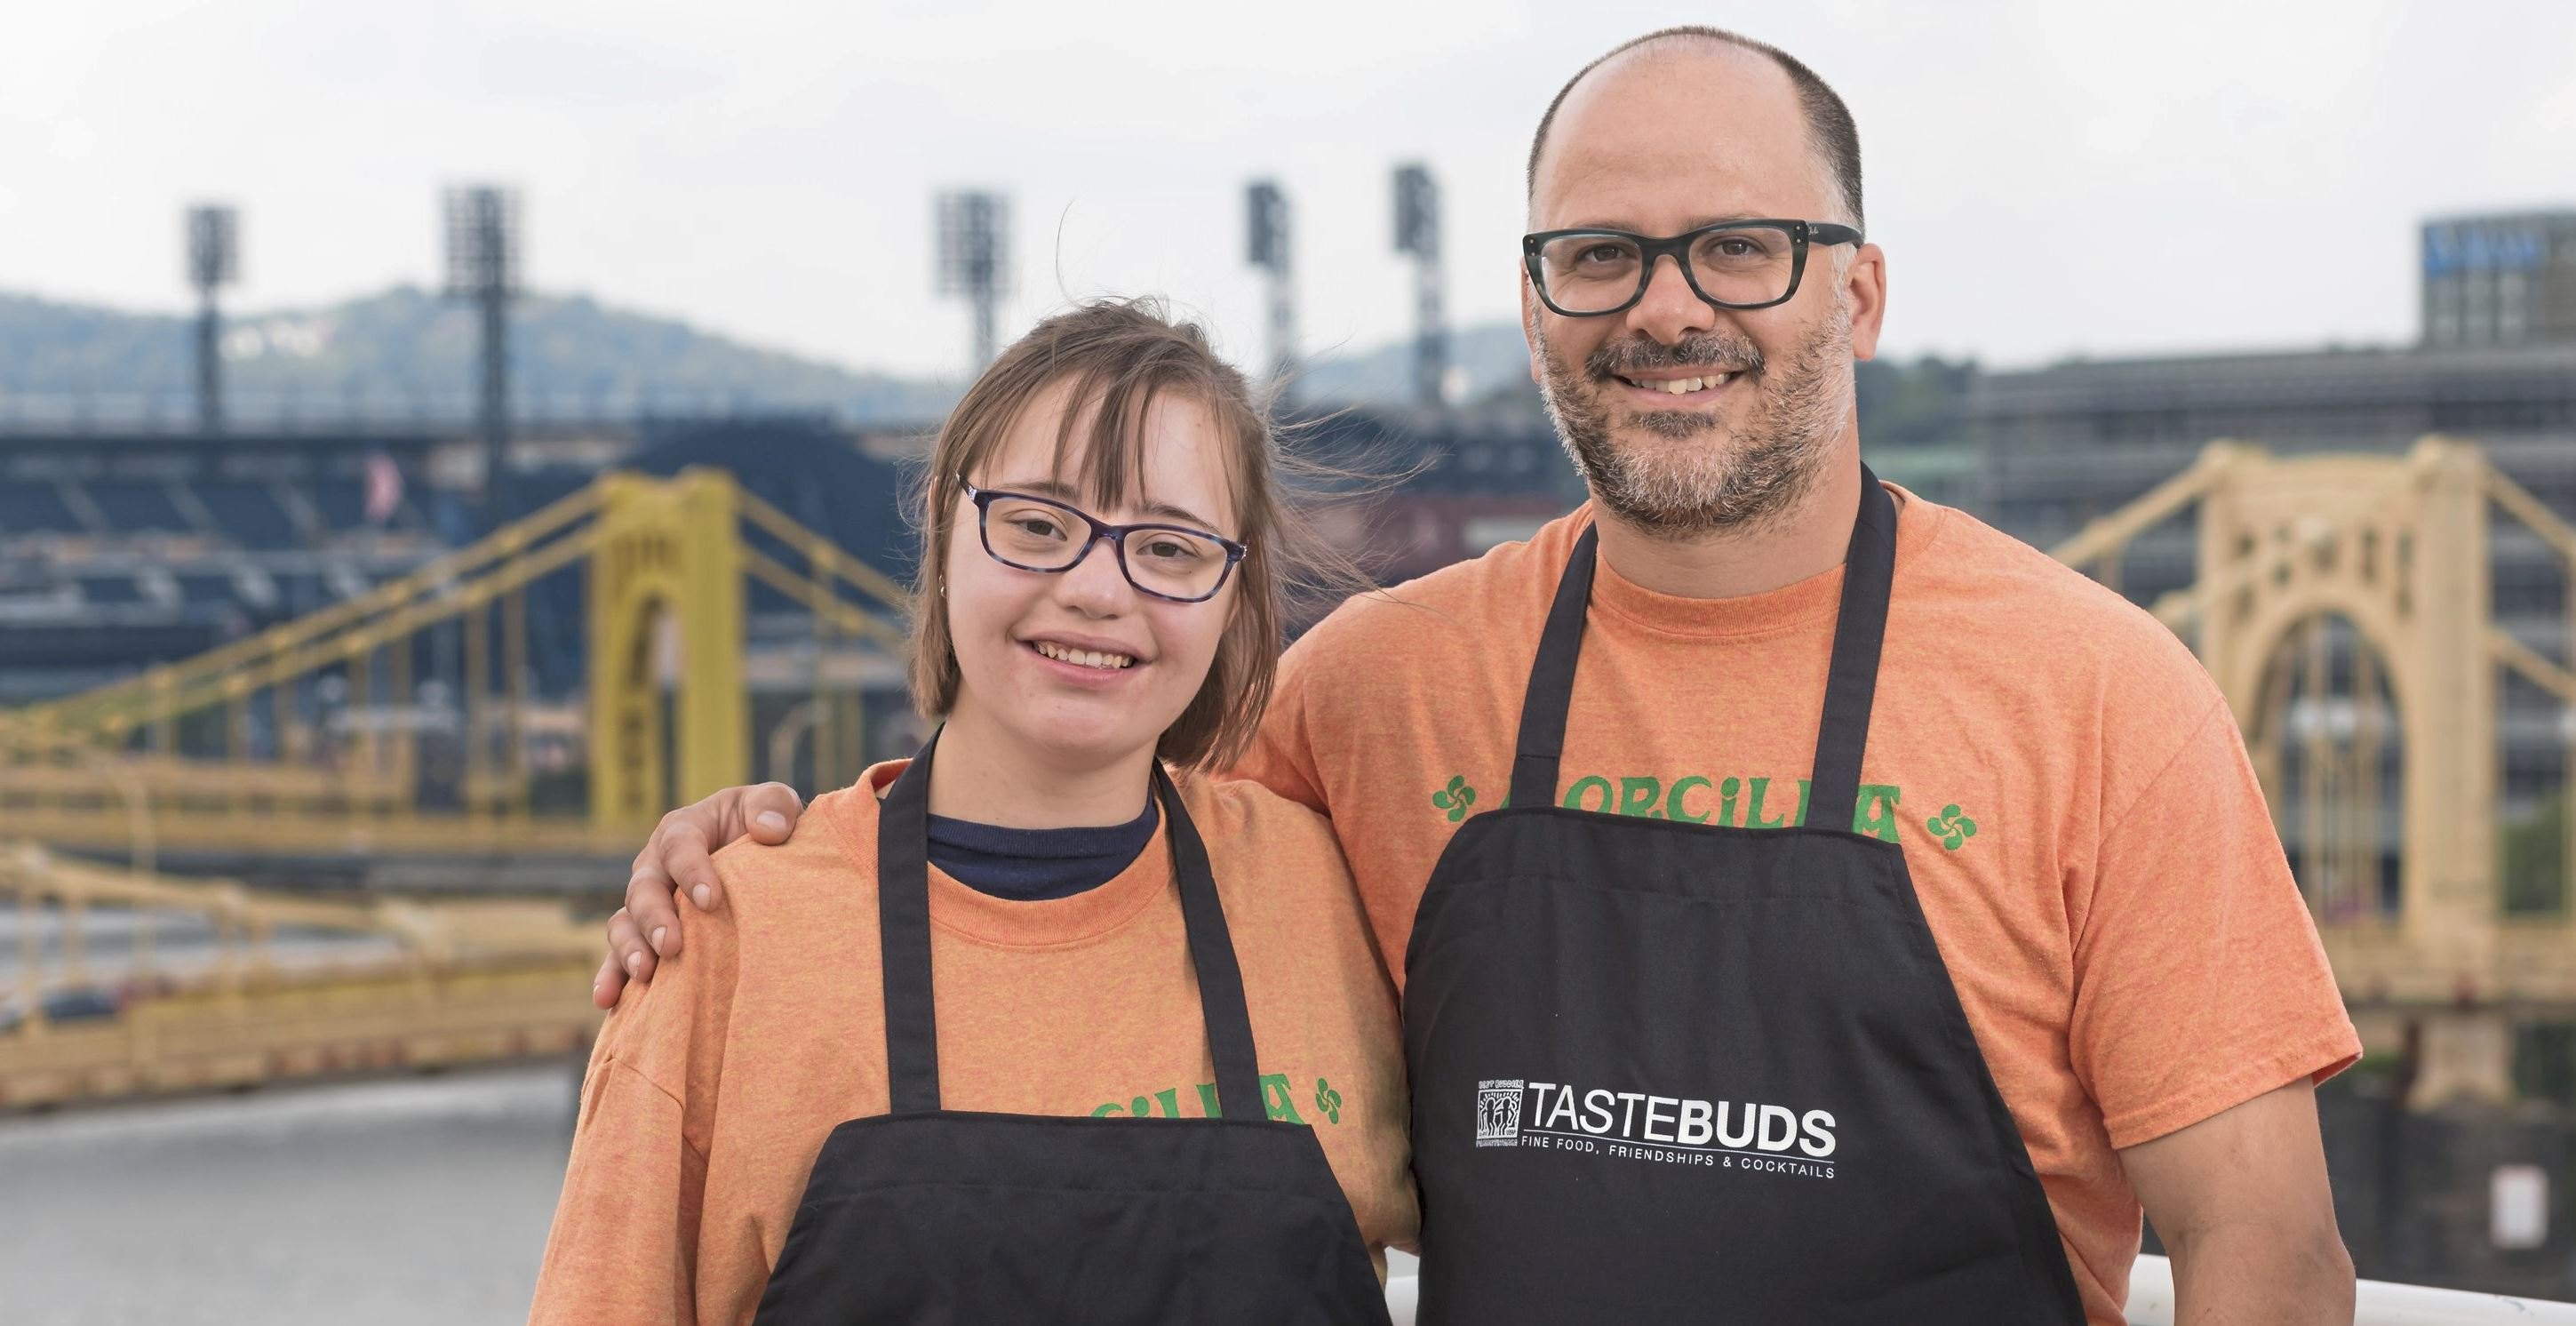 tastebuds severino Justin Severino of Cure, and Morcilla, at right, will cook with Abby Molinaro at Tastebuds in November